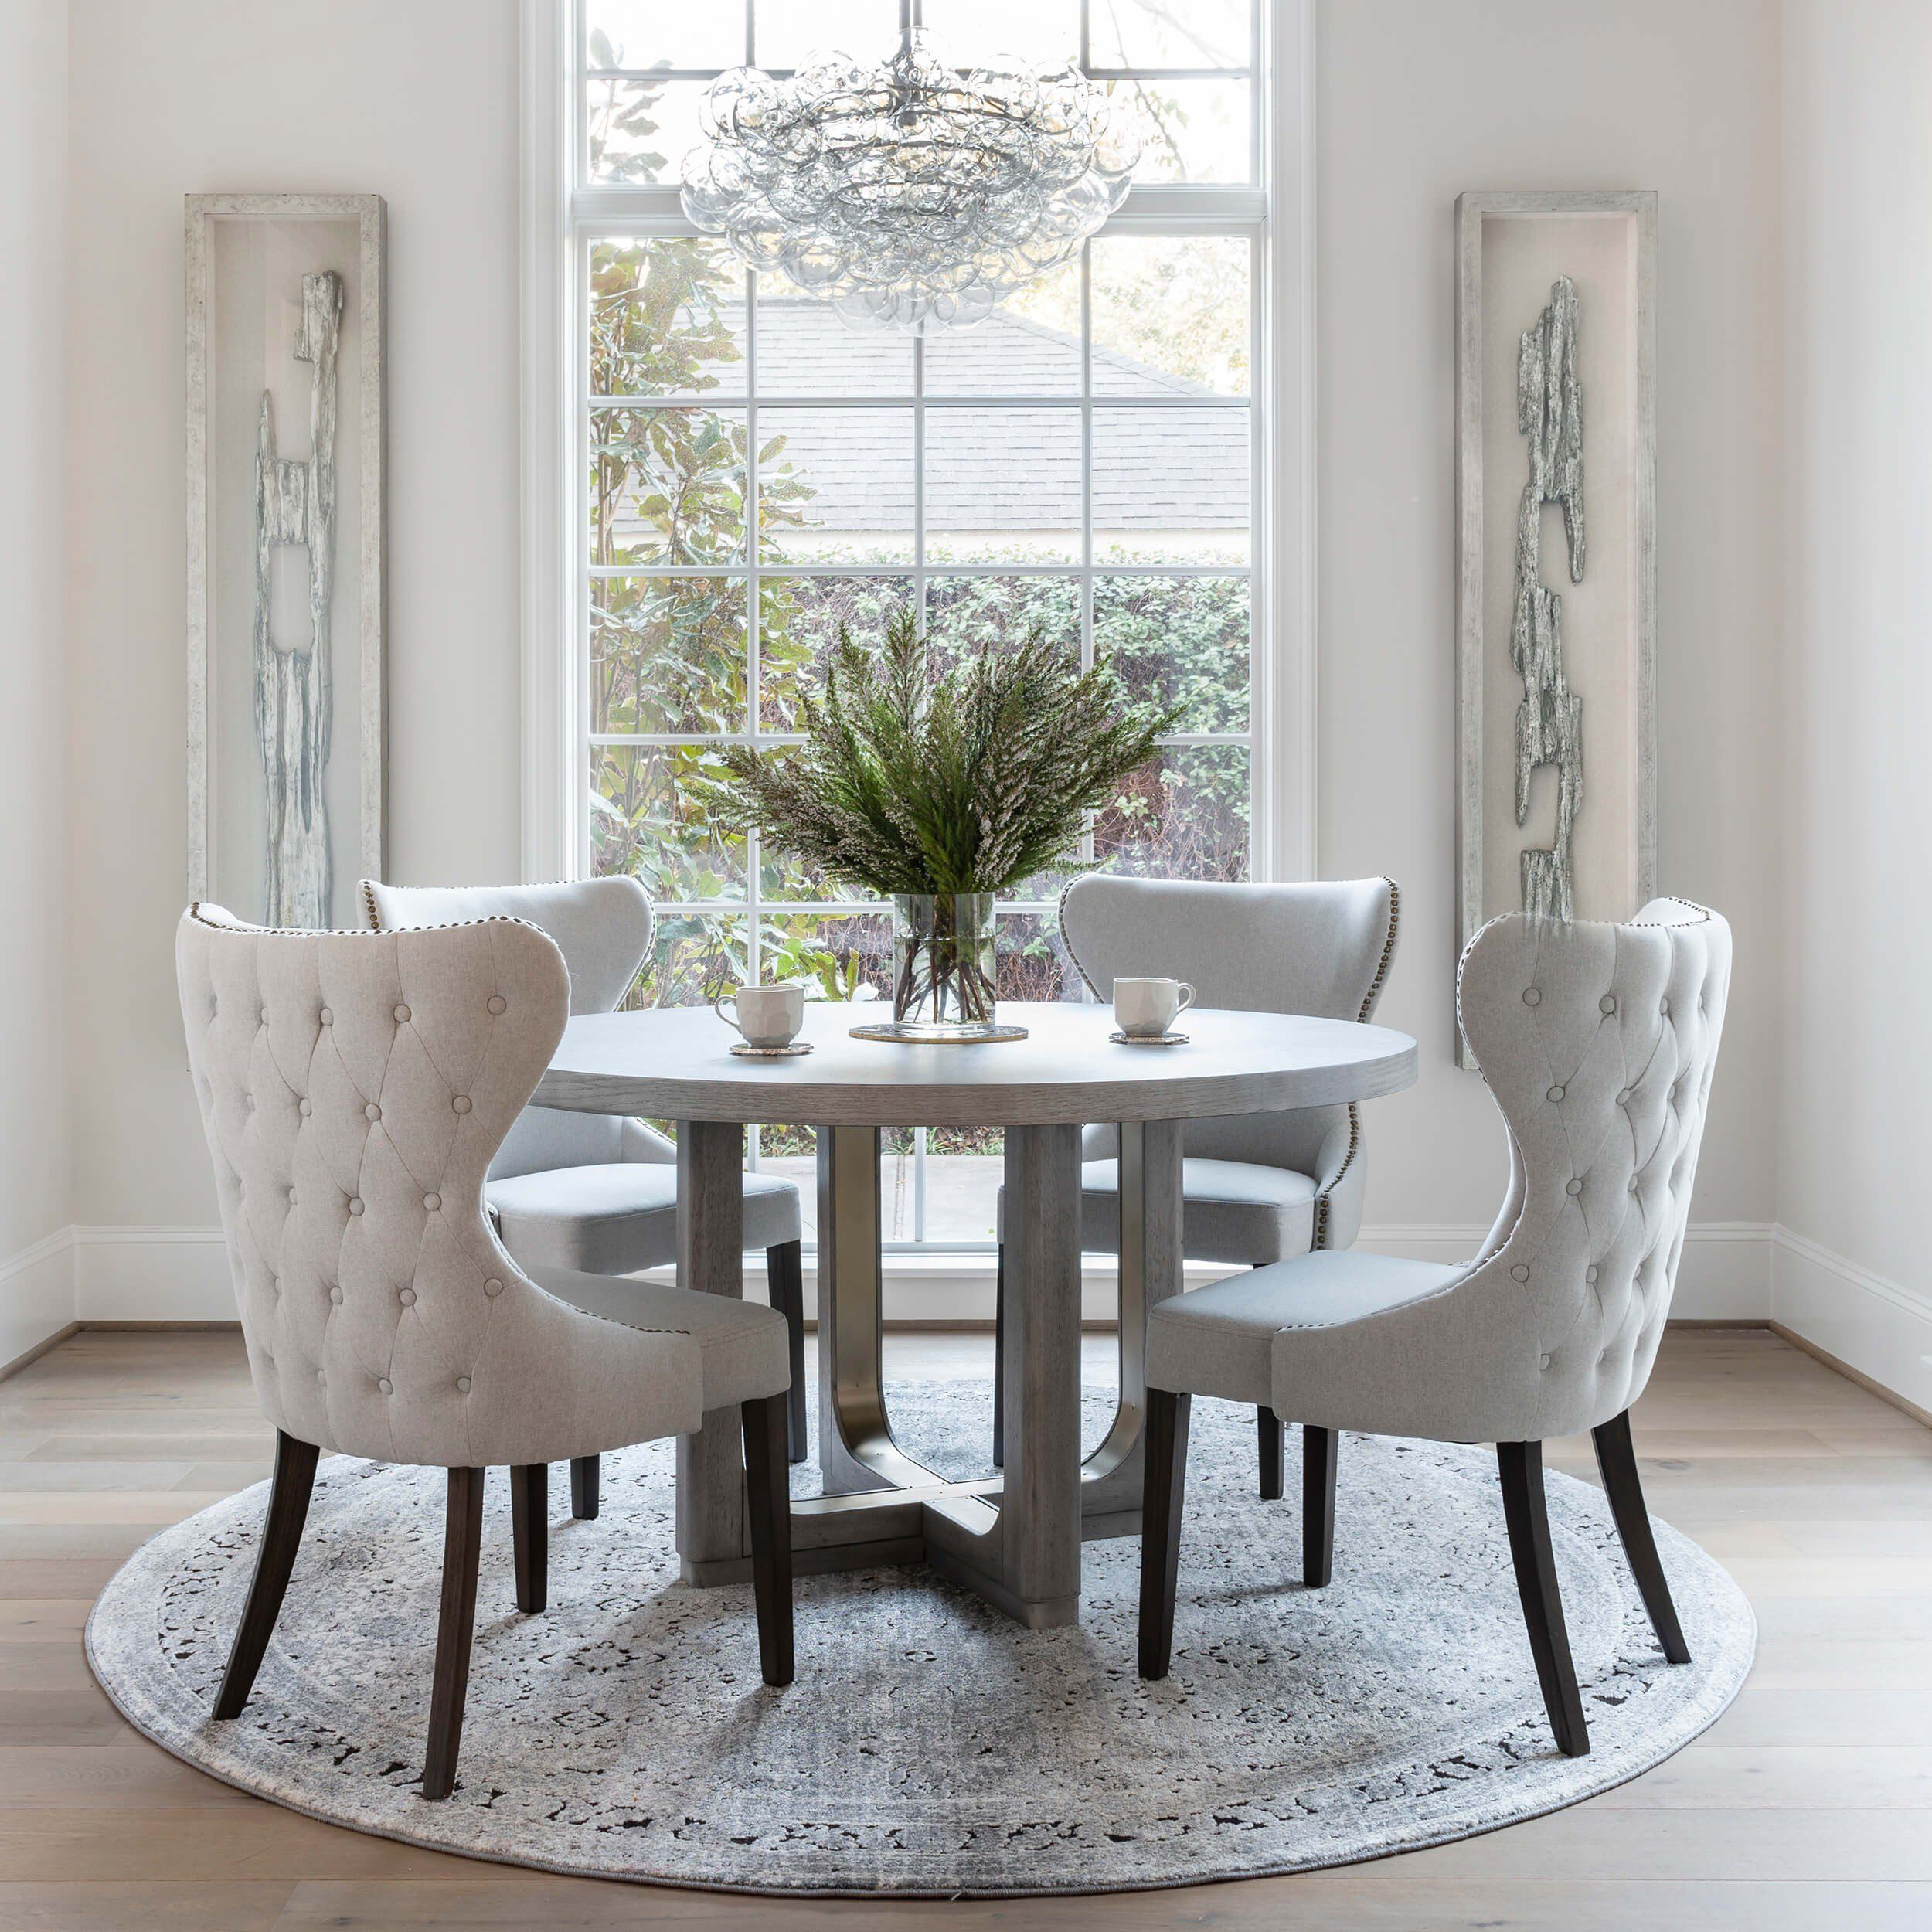 Ariana Dining Chair Light Grey Brass Nailheads Elegant Dining